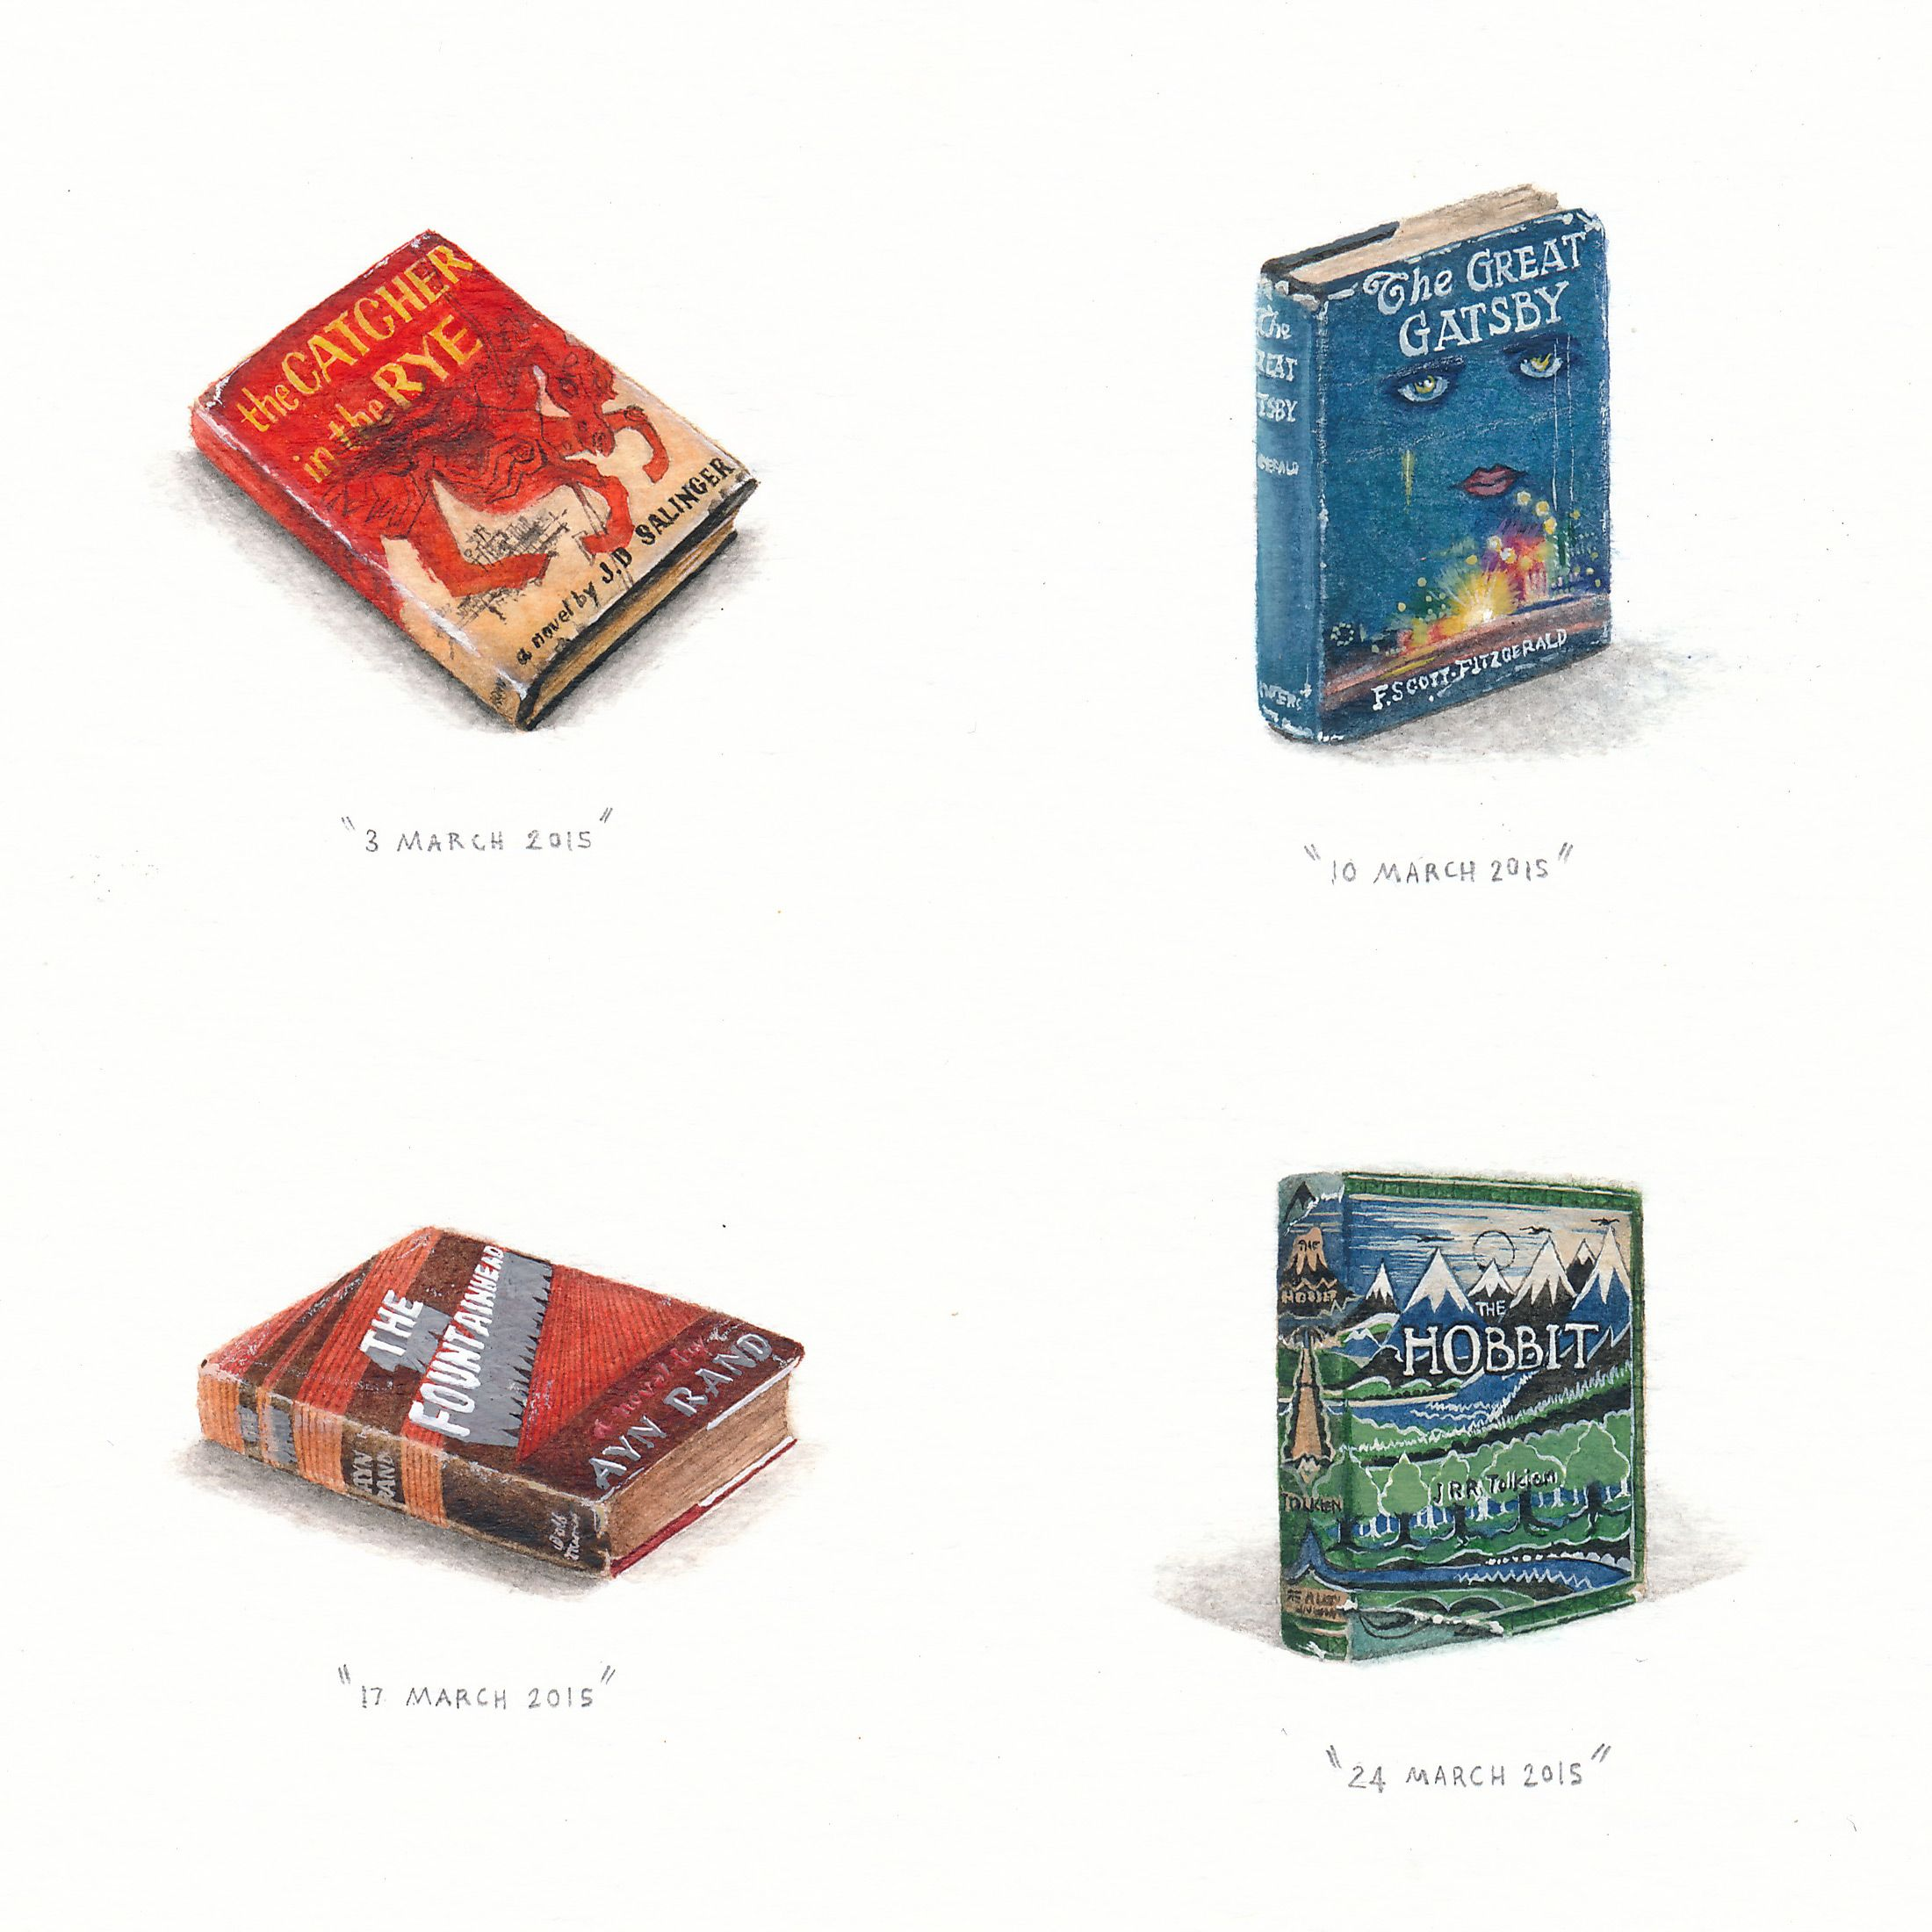 Watercolor book covers - A New 100 Day Miniature Painting Project By Lorraine Loots Tackles Vintage Book Covers